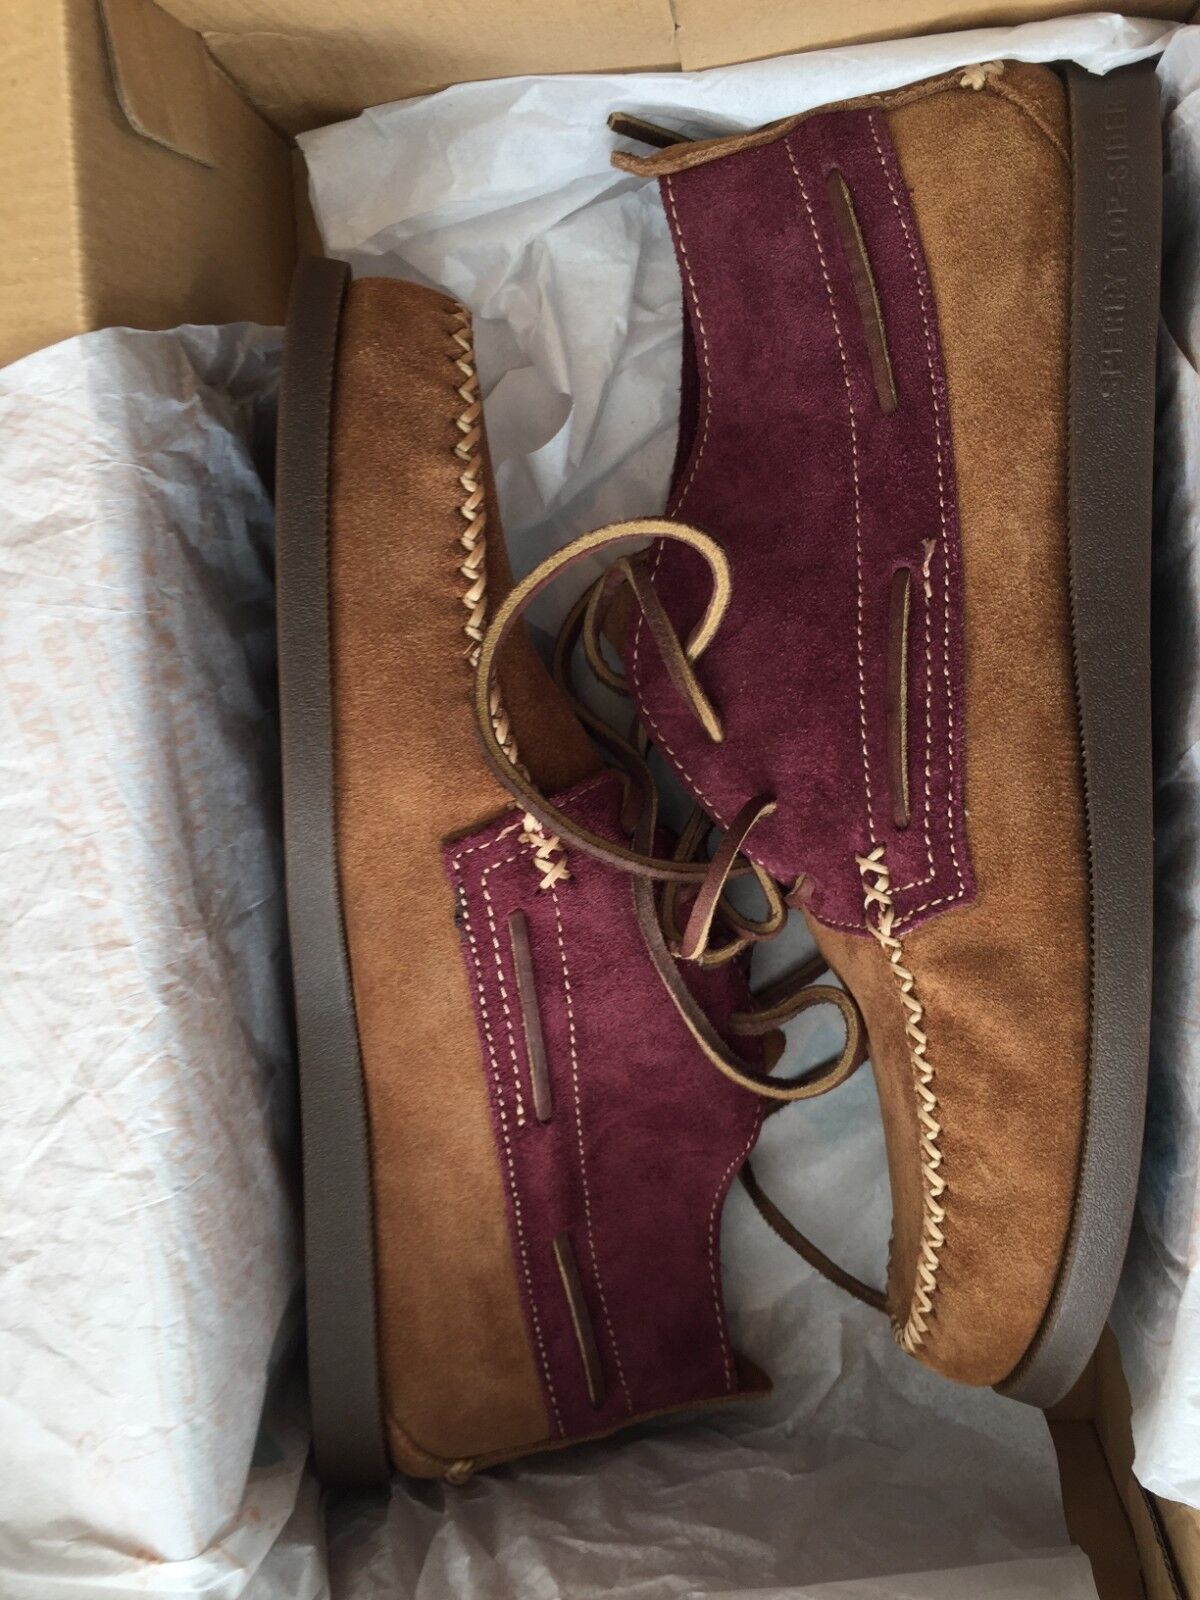 NEW MENS SPERRY WEDGE CHUKKA TAN AND BURGUNDY SUEDE LEATHER BOOTS RRP 225